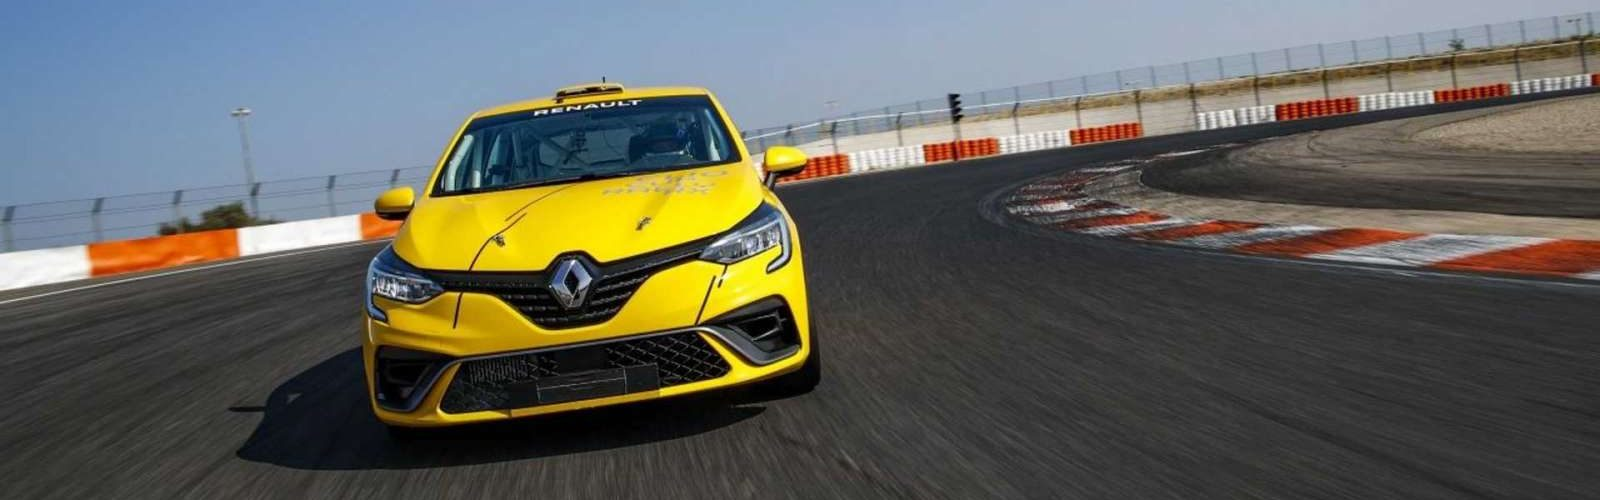 Renault Clio Cup 2020 5